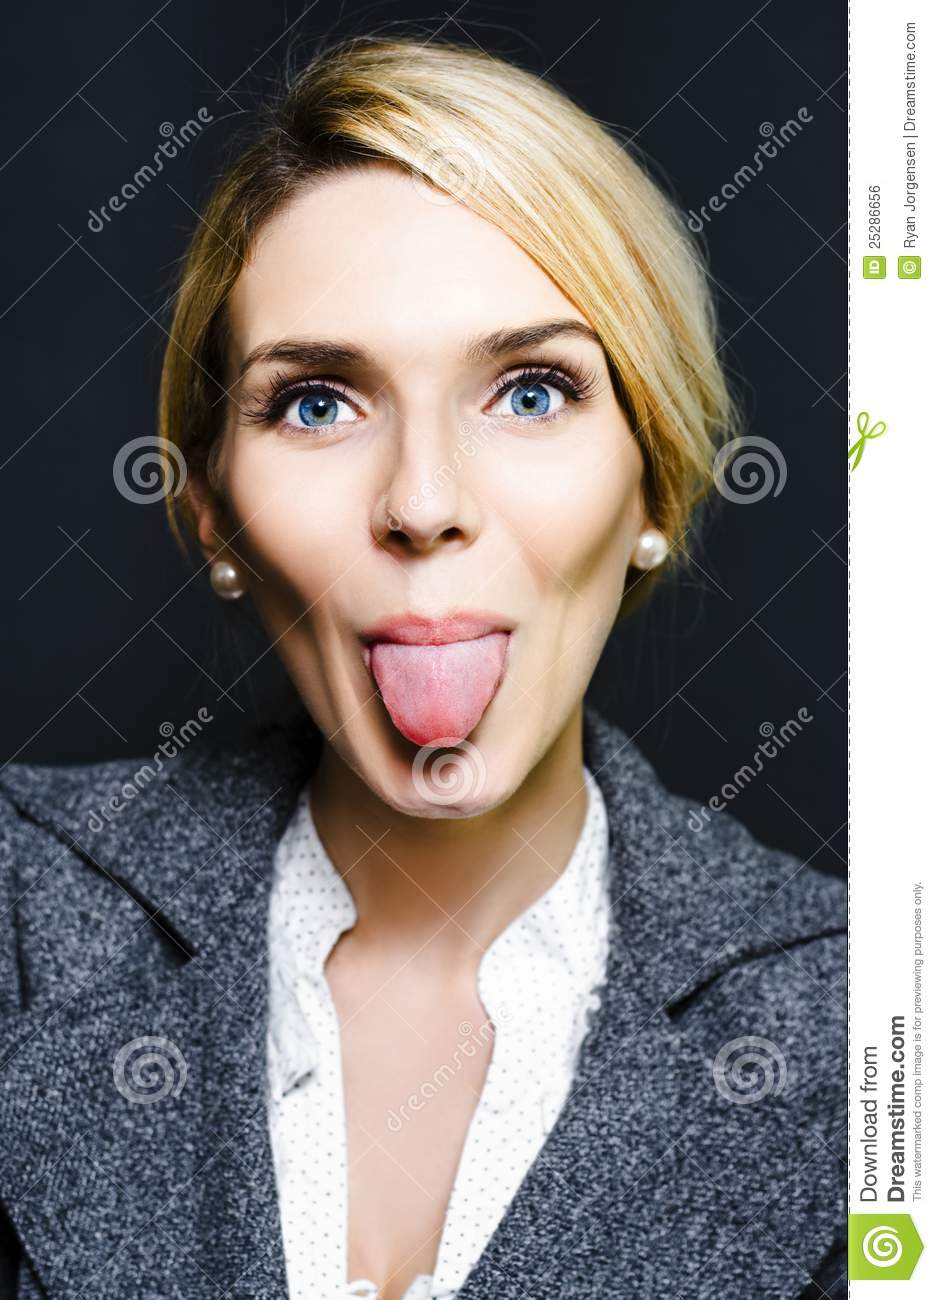 Cheeky Business Woman Sticking Out Tongue Royalty Free Stock Image - Image 25286656-1547